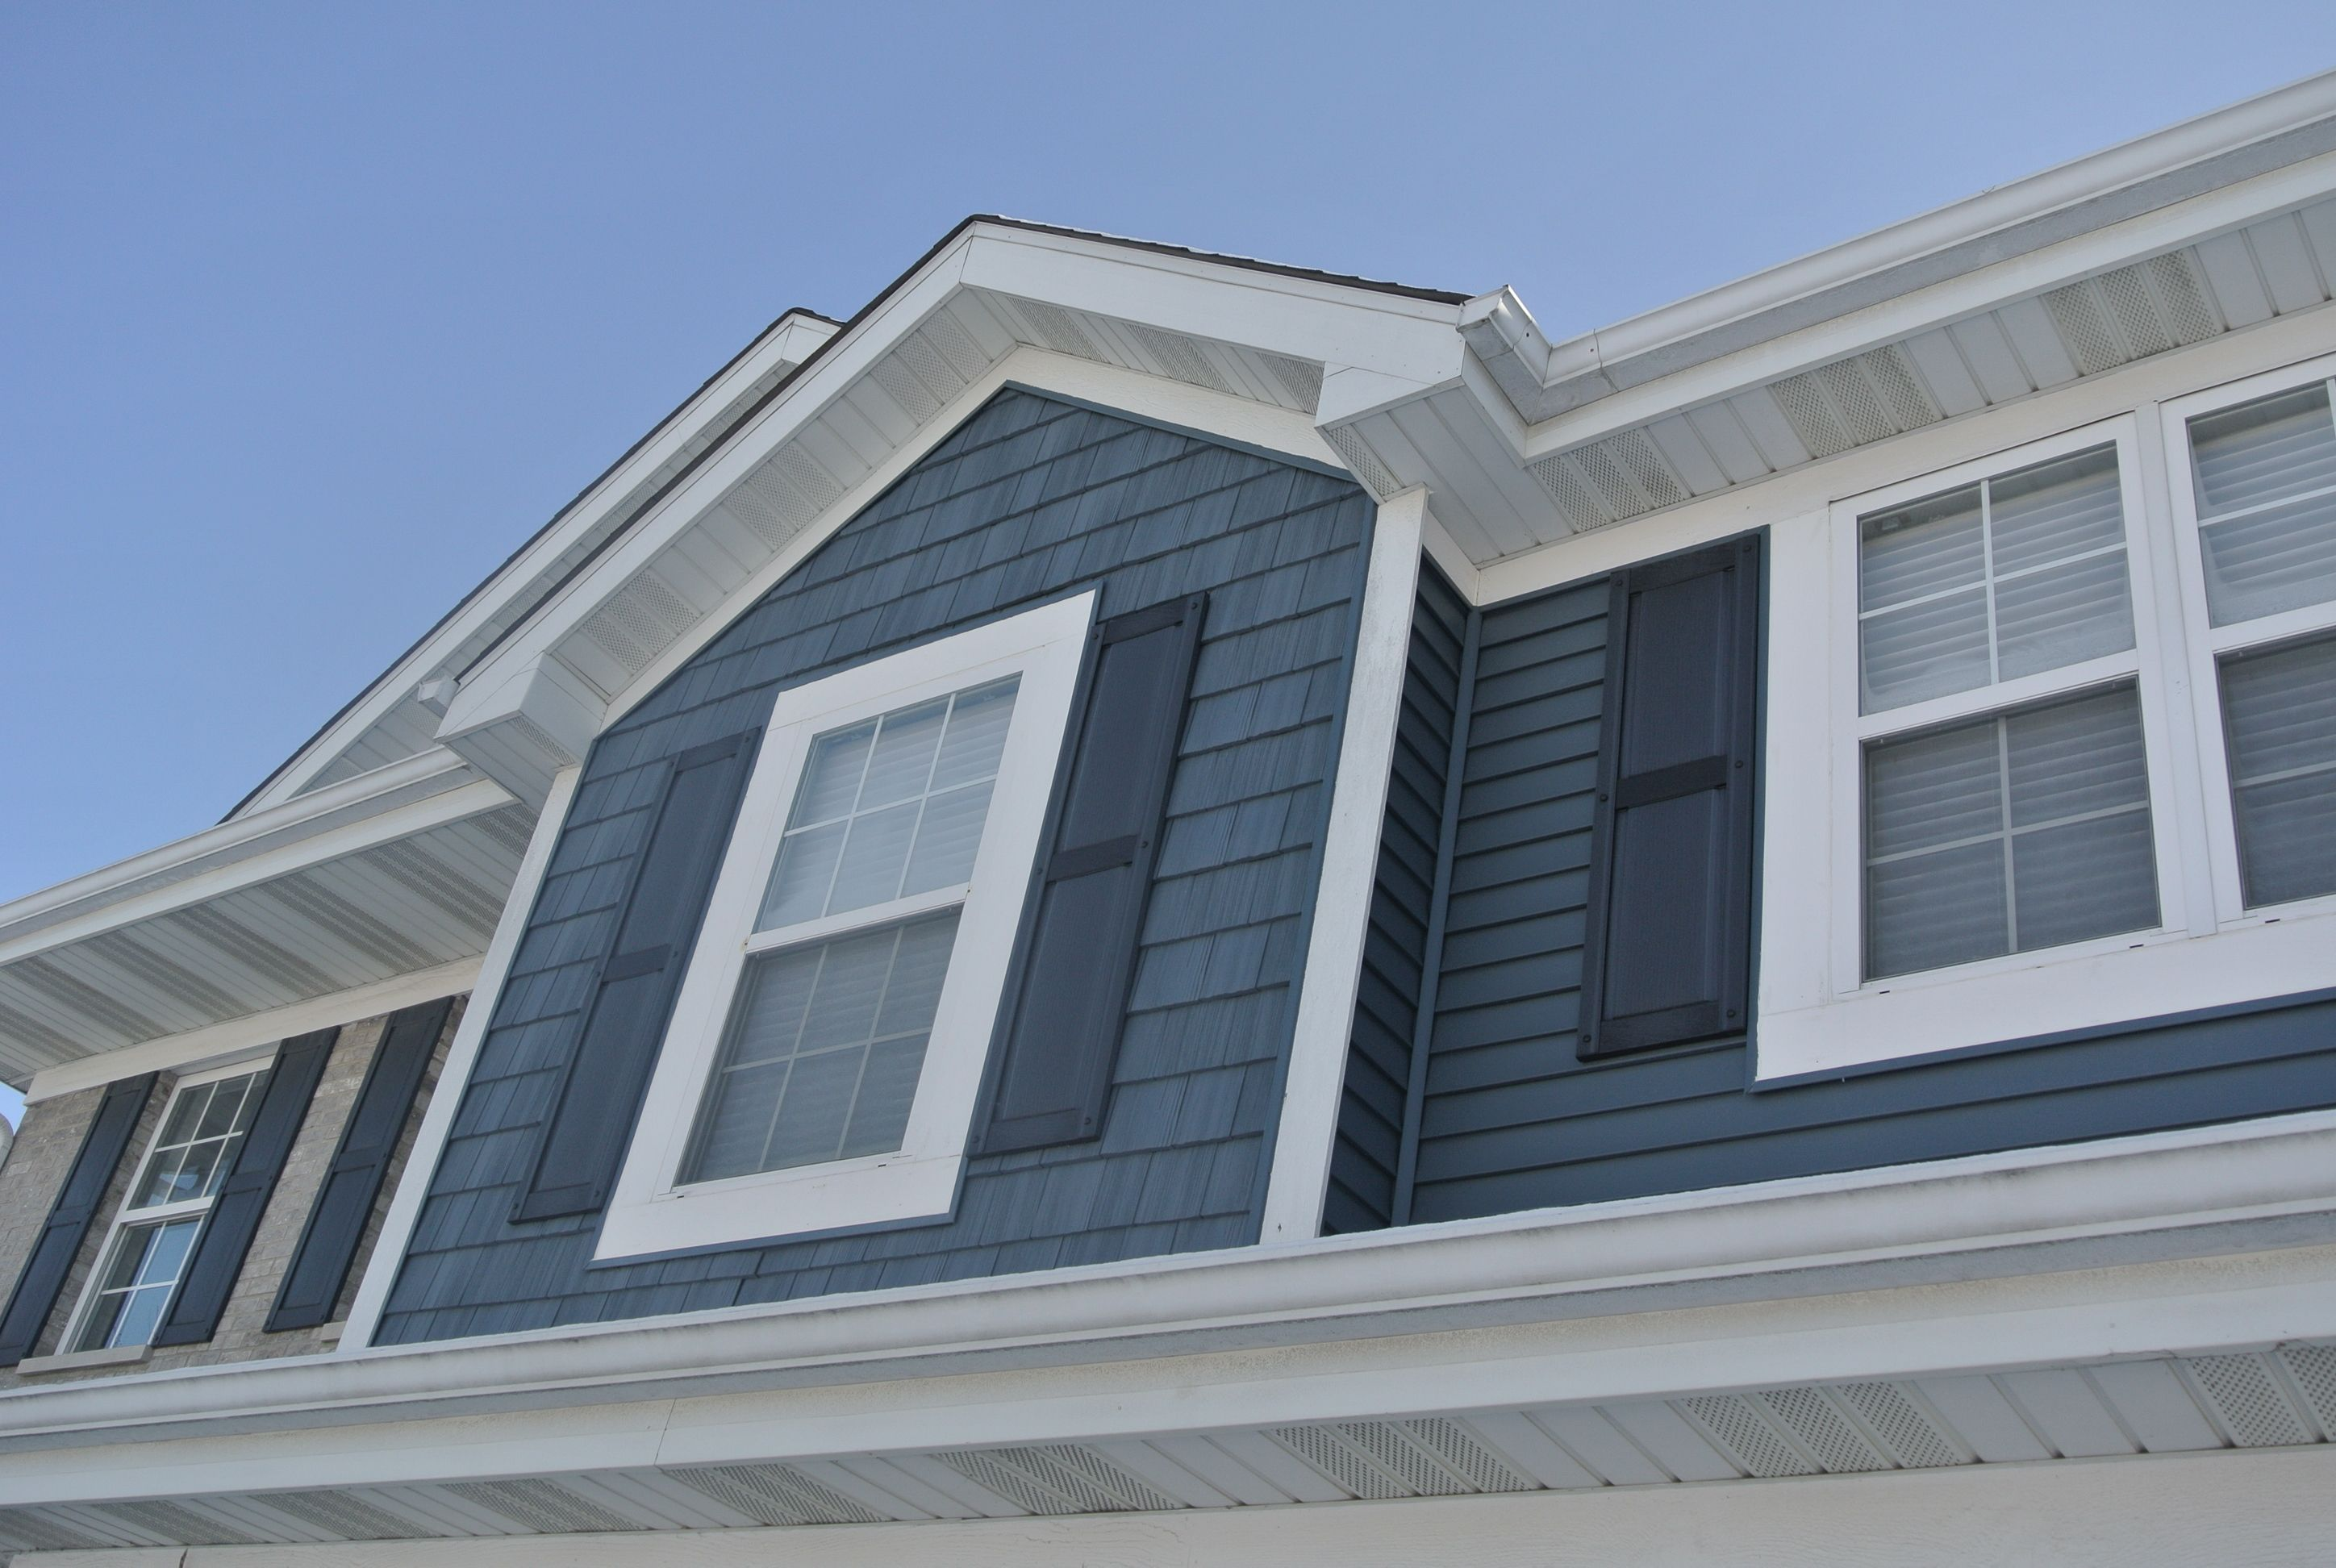 7 Popular Siding Materials To Consider: Pacific Blue Vinyl Siding By CertainTeed. This Shows The